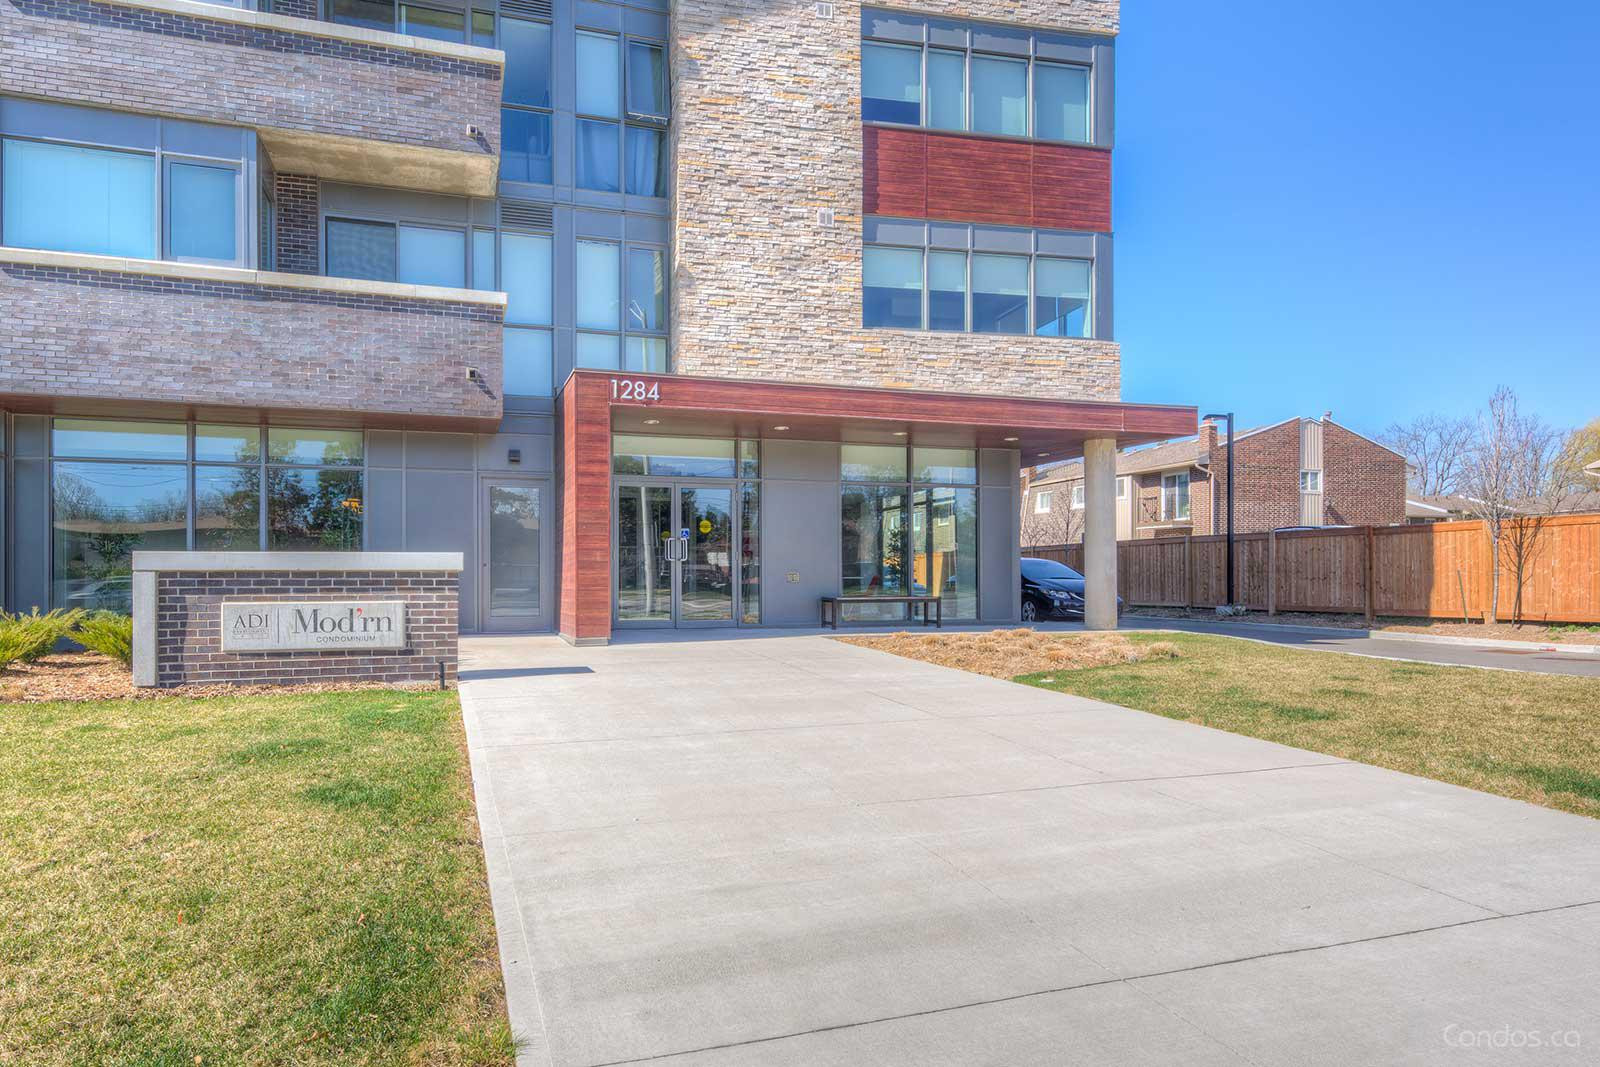 The Mod'rn Condominium at 1284 Guelph Line, Burlington 1